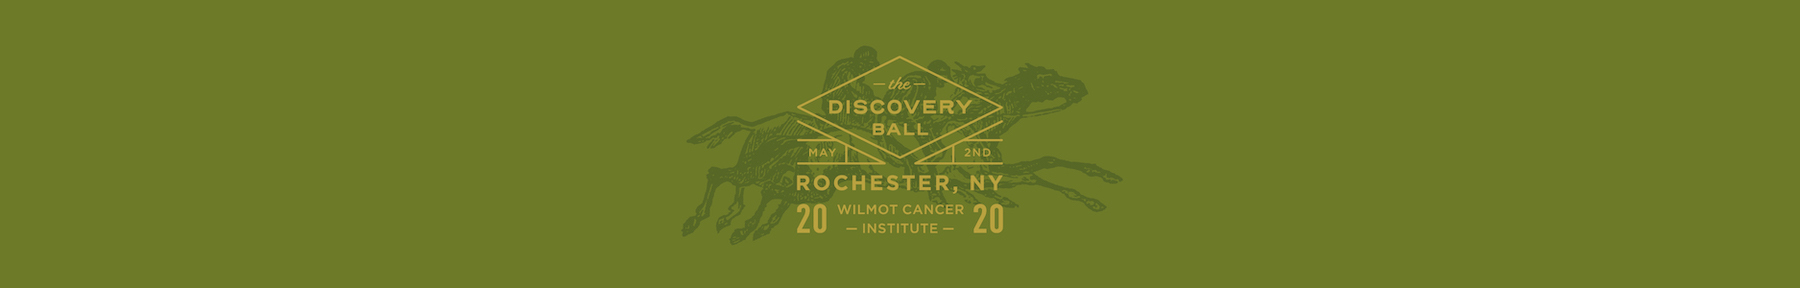 discoveryball2020